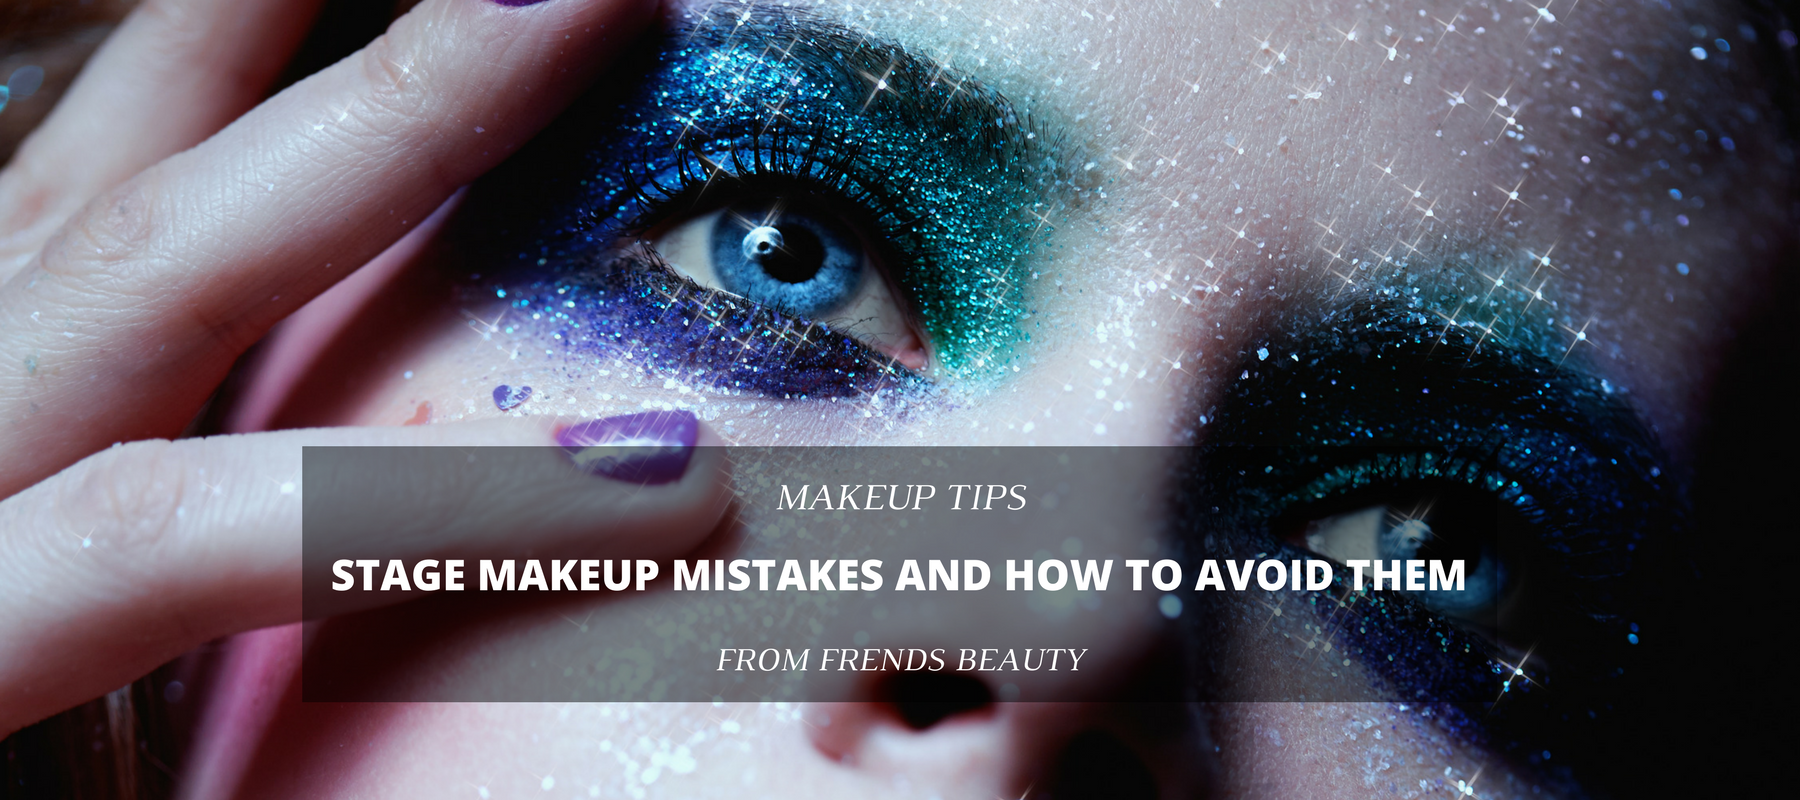 Stage Makeup Mistakes and How to Avoid Them - Frends Beauty Blog